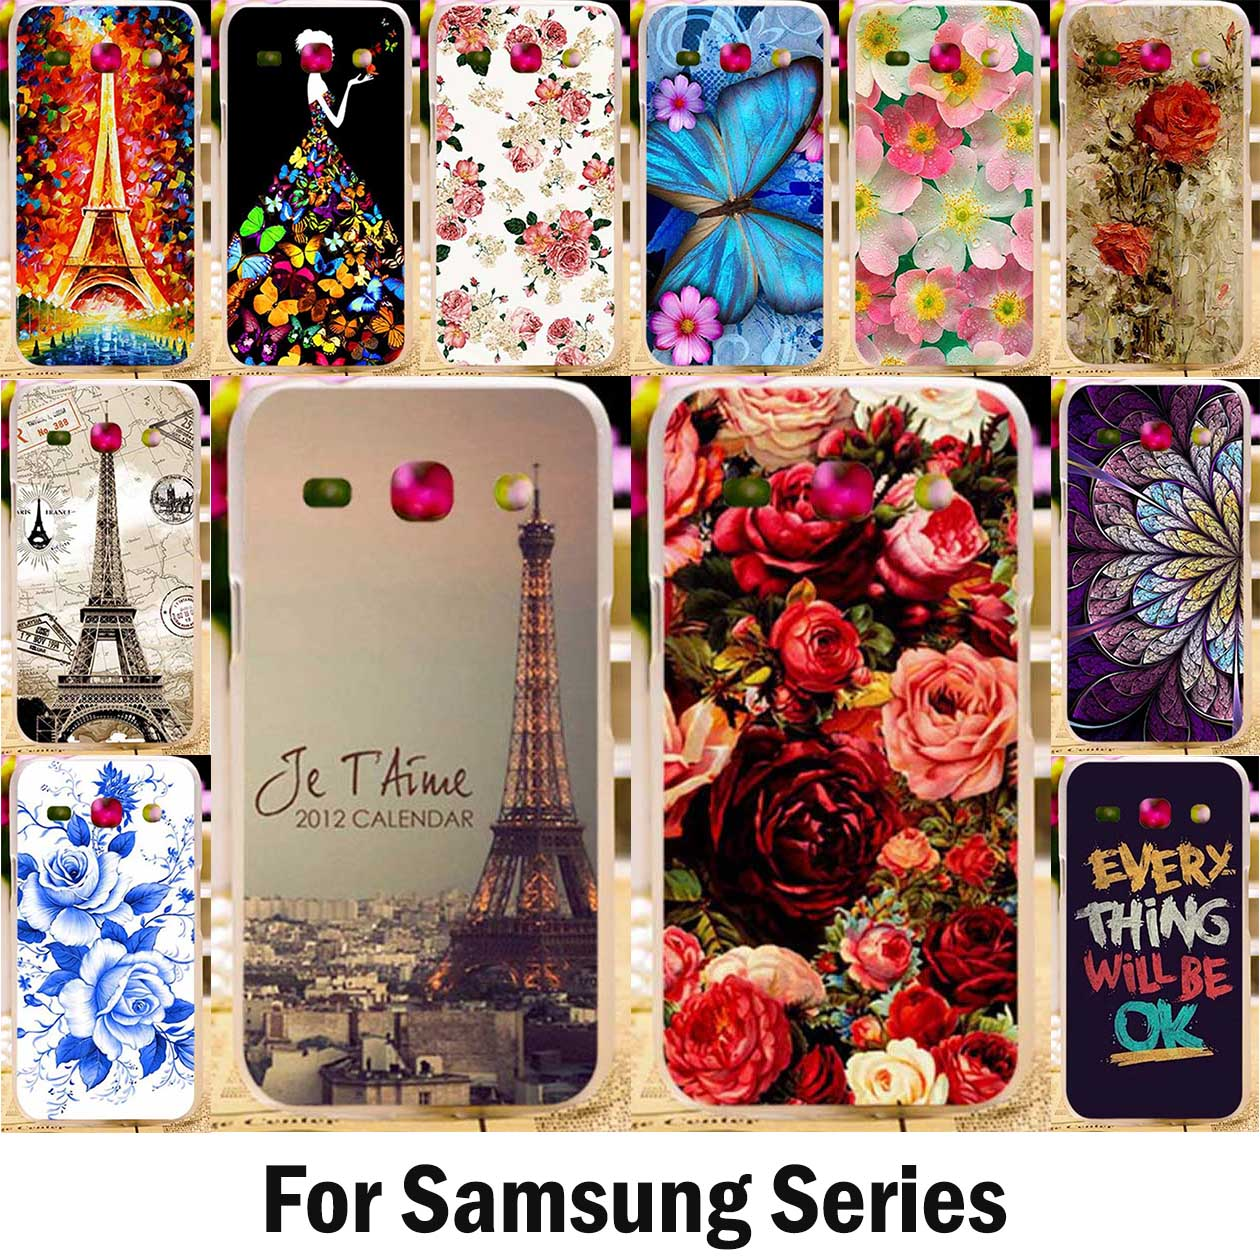 TAOYUNXI Cover Case For Samsung Galaxy G350E A6 Plus 2018 J3 Pro 2017 J5 J7 2016 Note3 4 5 S2 S3 S4 S5 Mini S6 edge Plus S7 Case